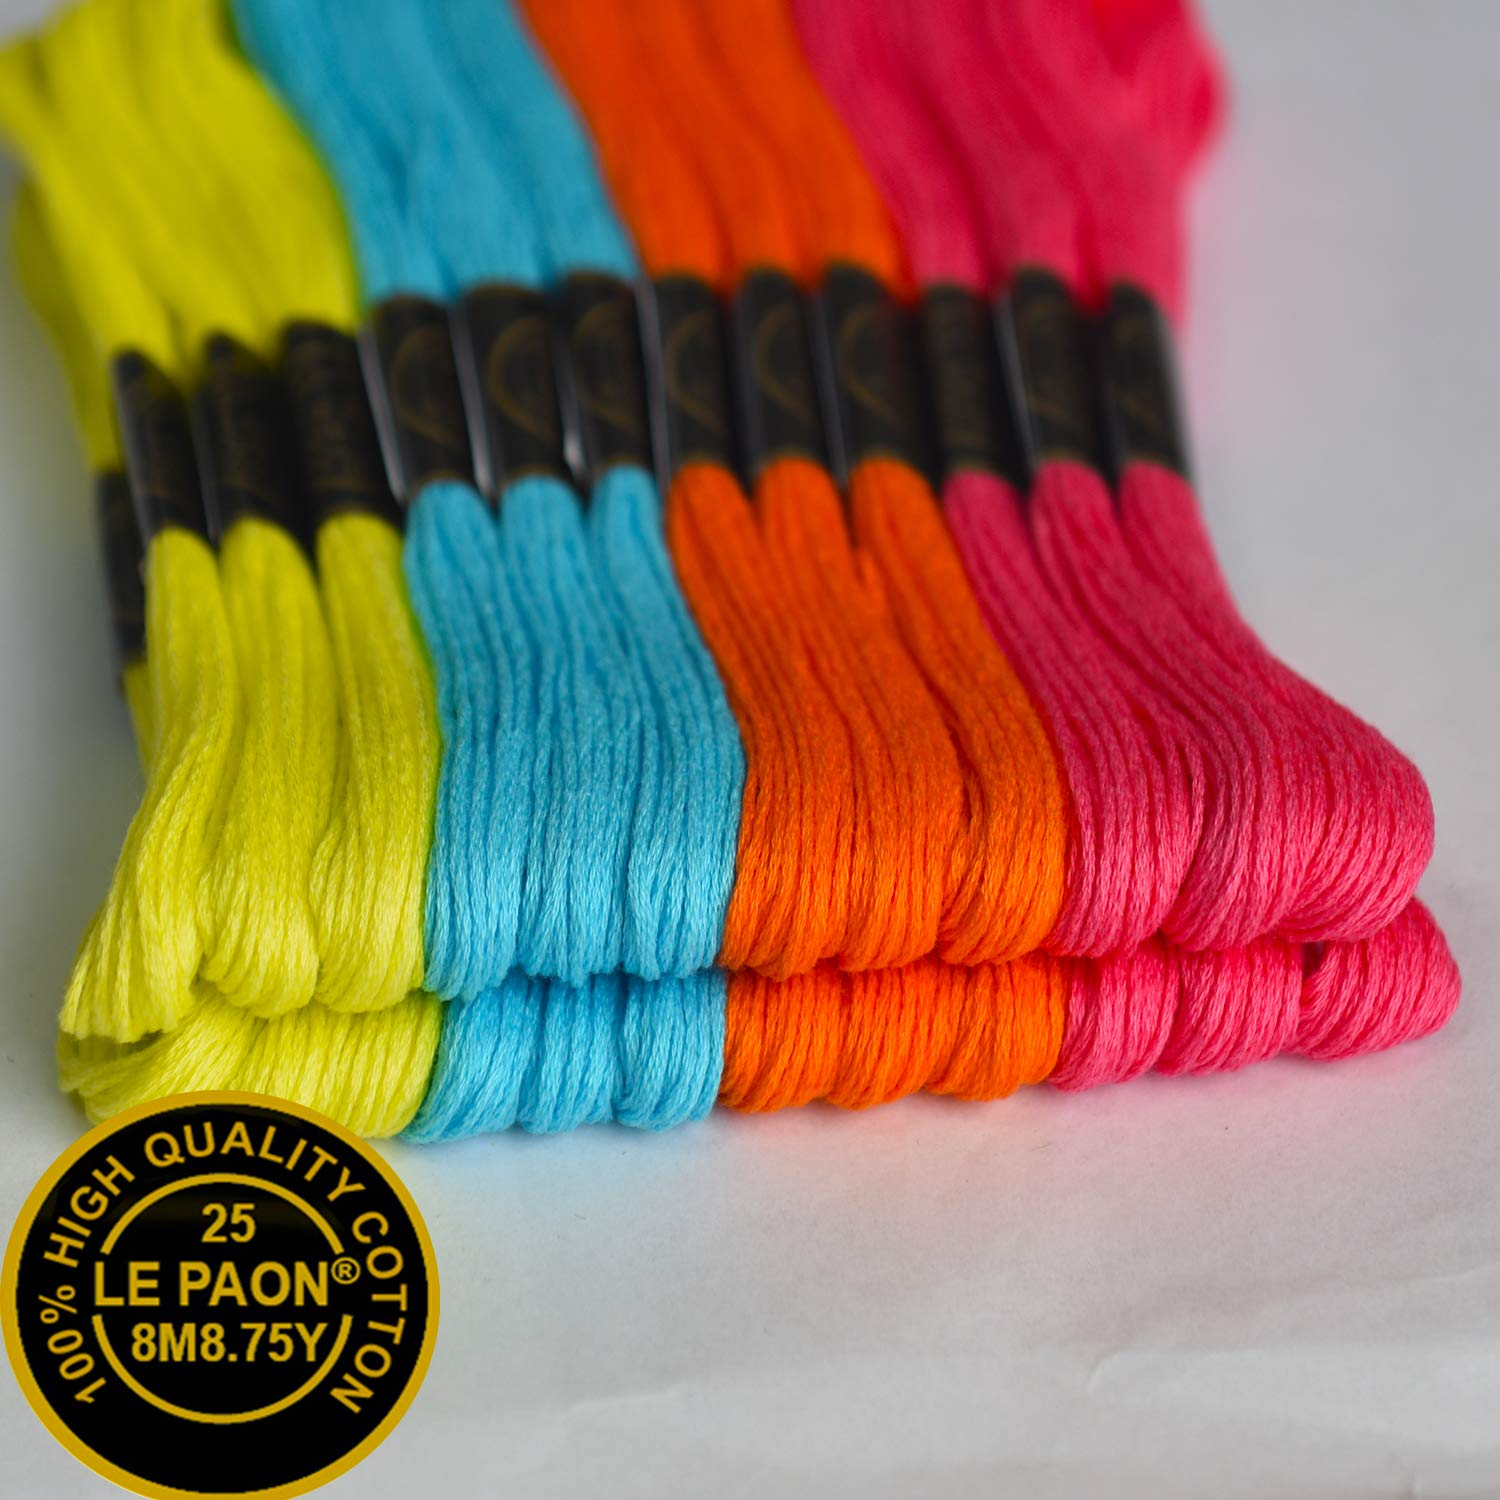 4Color Orange,red,Green/&Purple,24 Skeins Color 973,907,3805,702 Premium Embroidery Floss-Friendship Bracelets Floss-Cross Stitch Threads-Crafts FlossHand Embroidery Thread